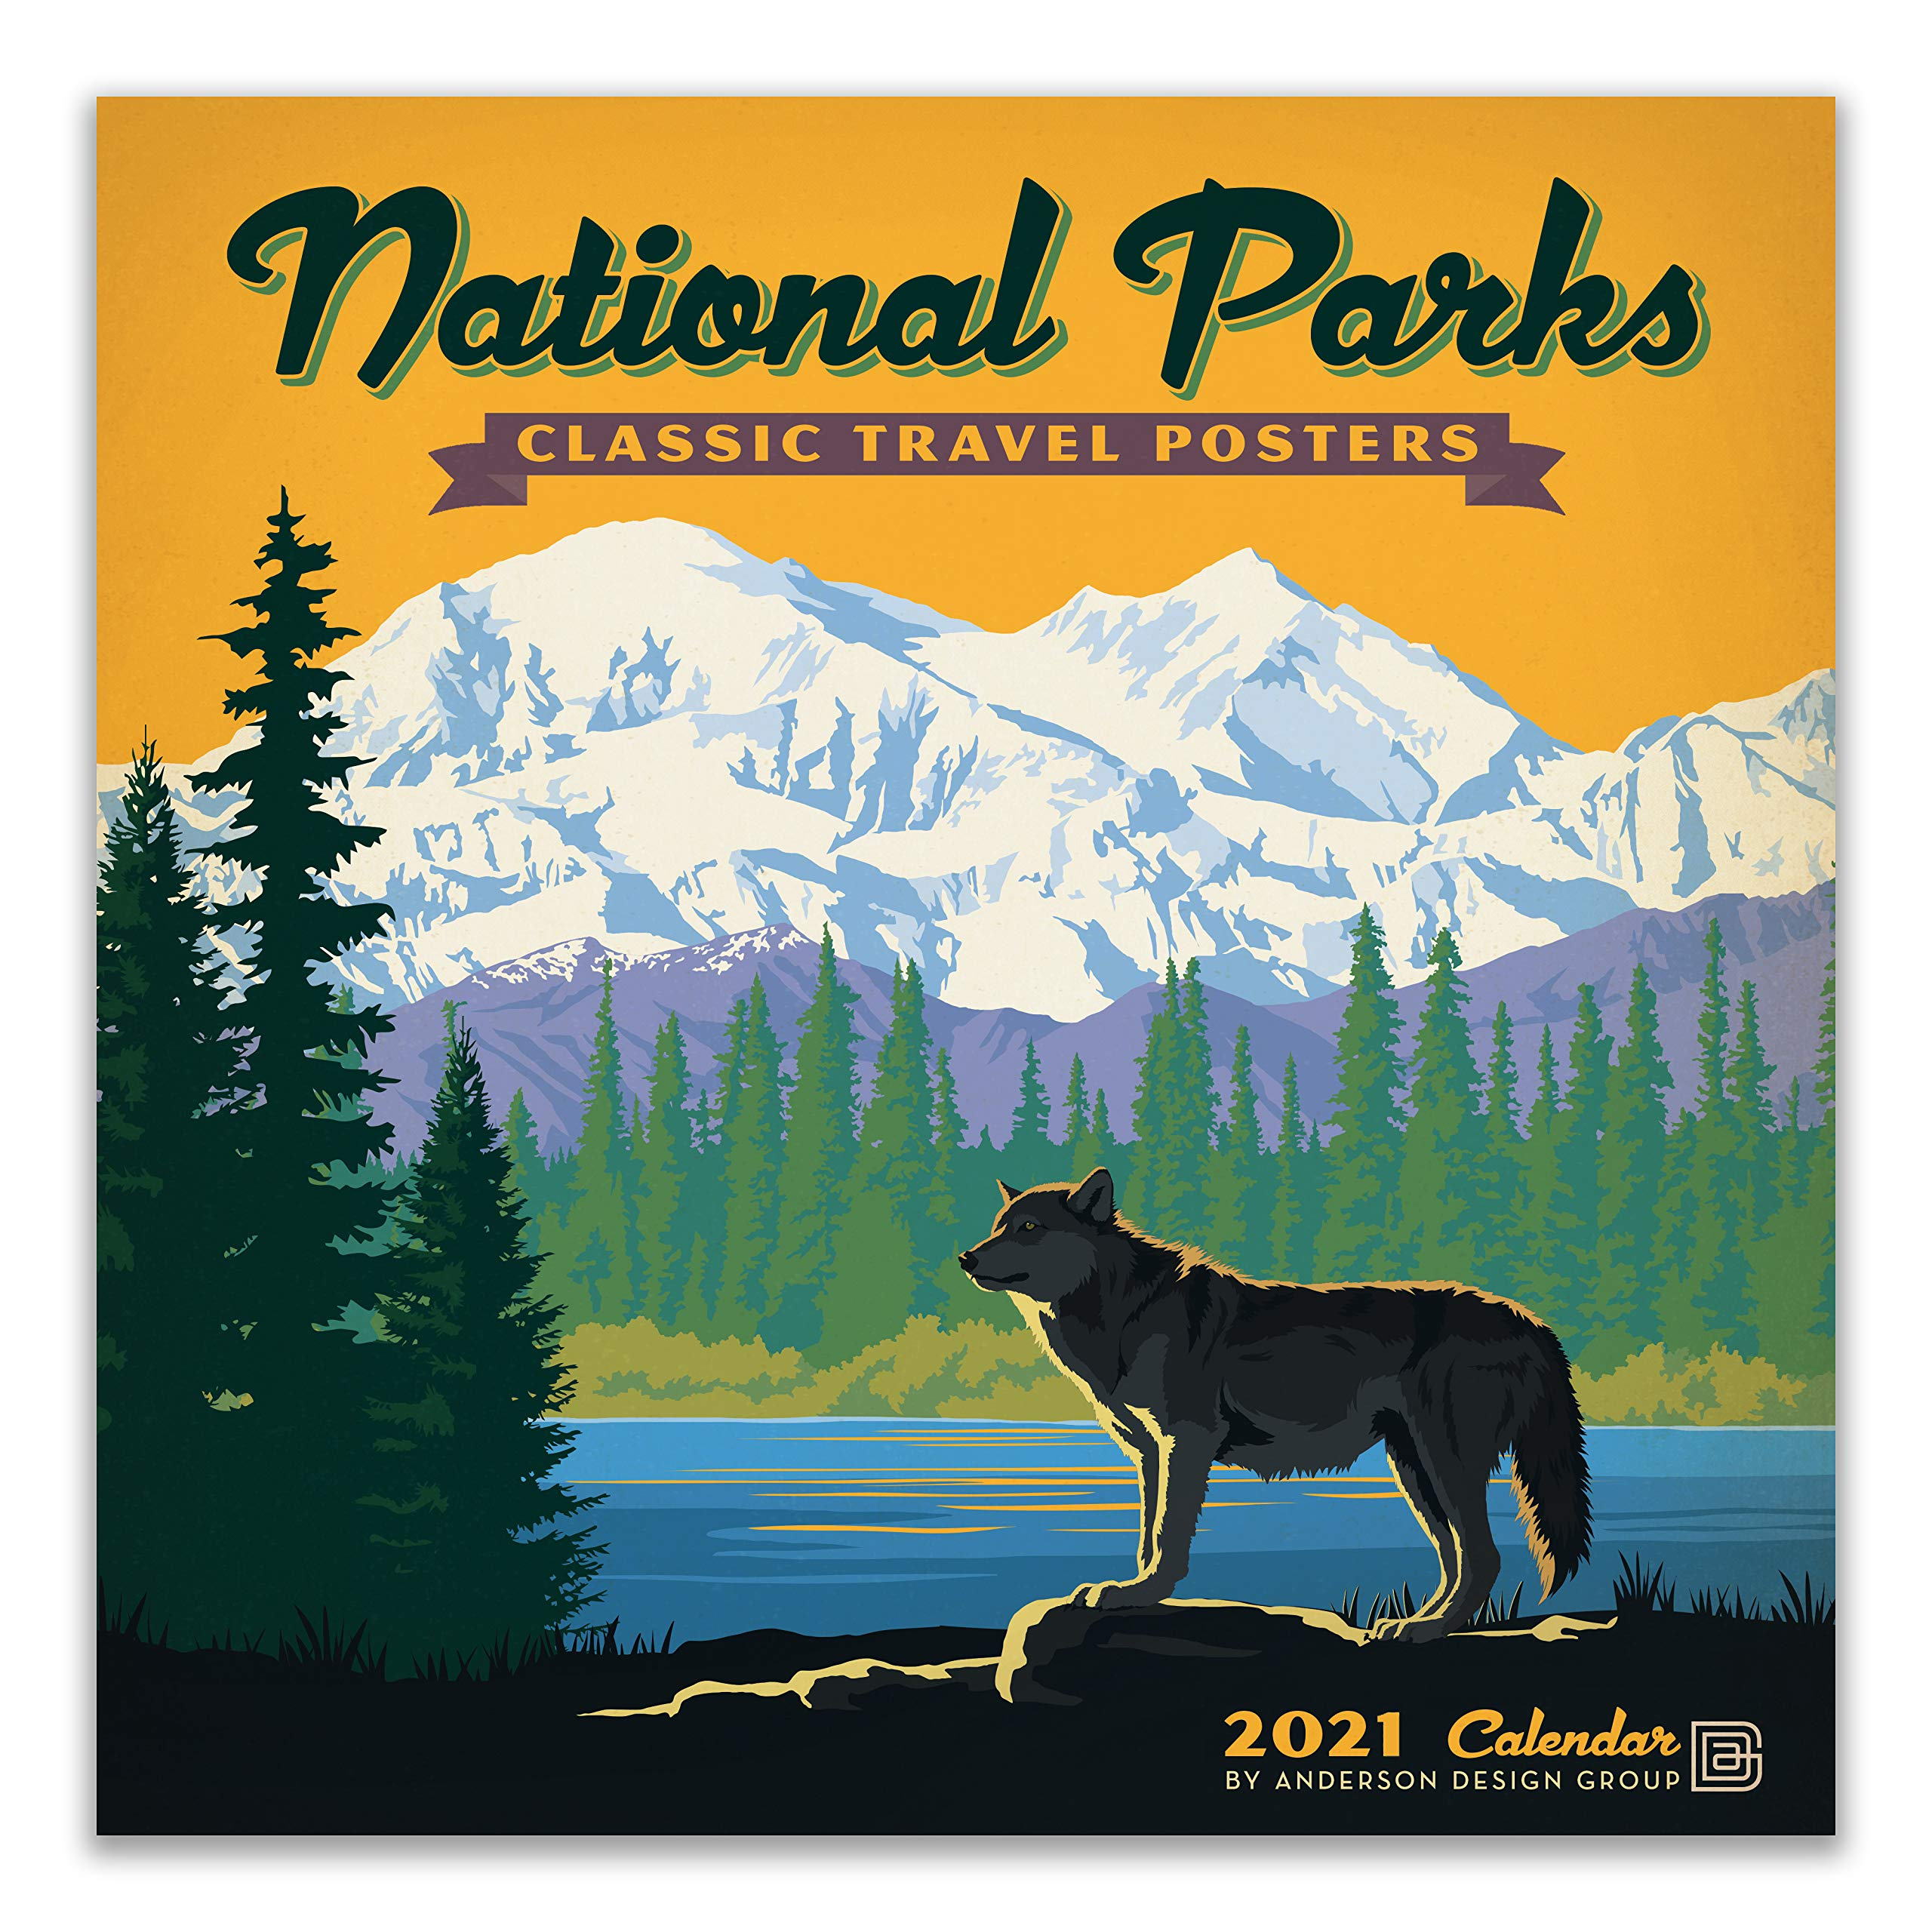 2021 National Parks Calendar National Parks Classic Posters 2021 Wall Calendar: Anderson Design